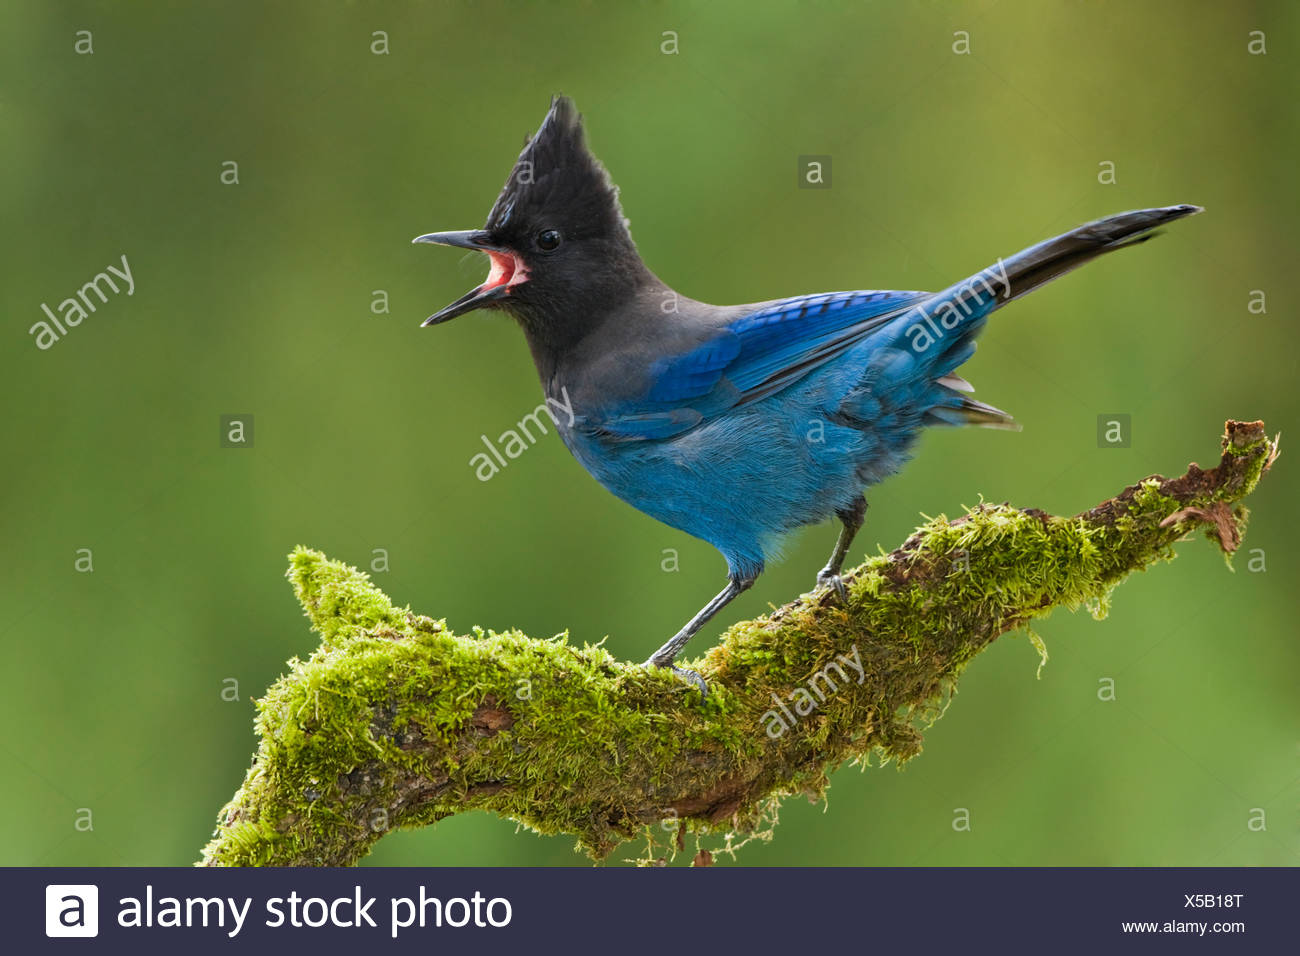 A Steller's Jay (Cyanocitta stelleri) perches on a mossy branch in Victoria, Vancouver Island, British Columbia, Canada - Stock Image